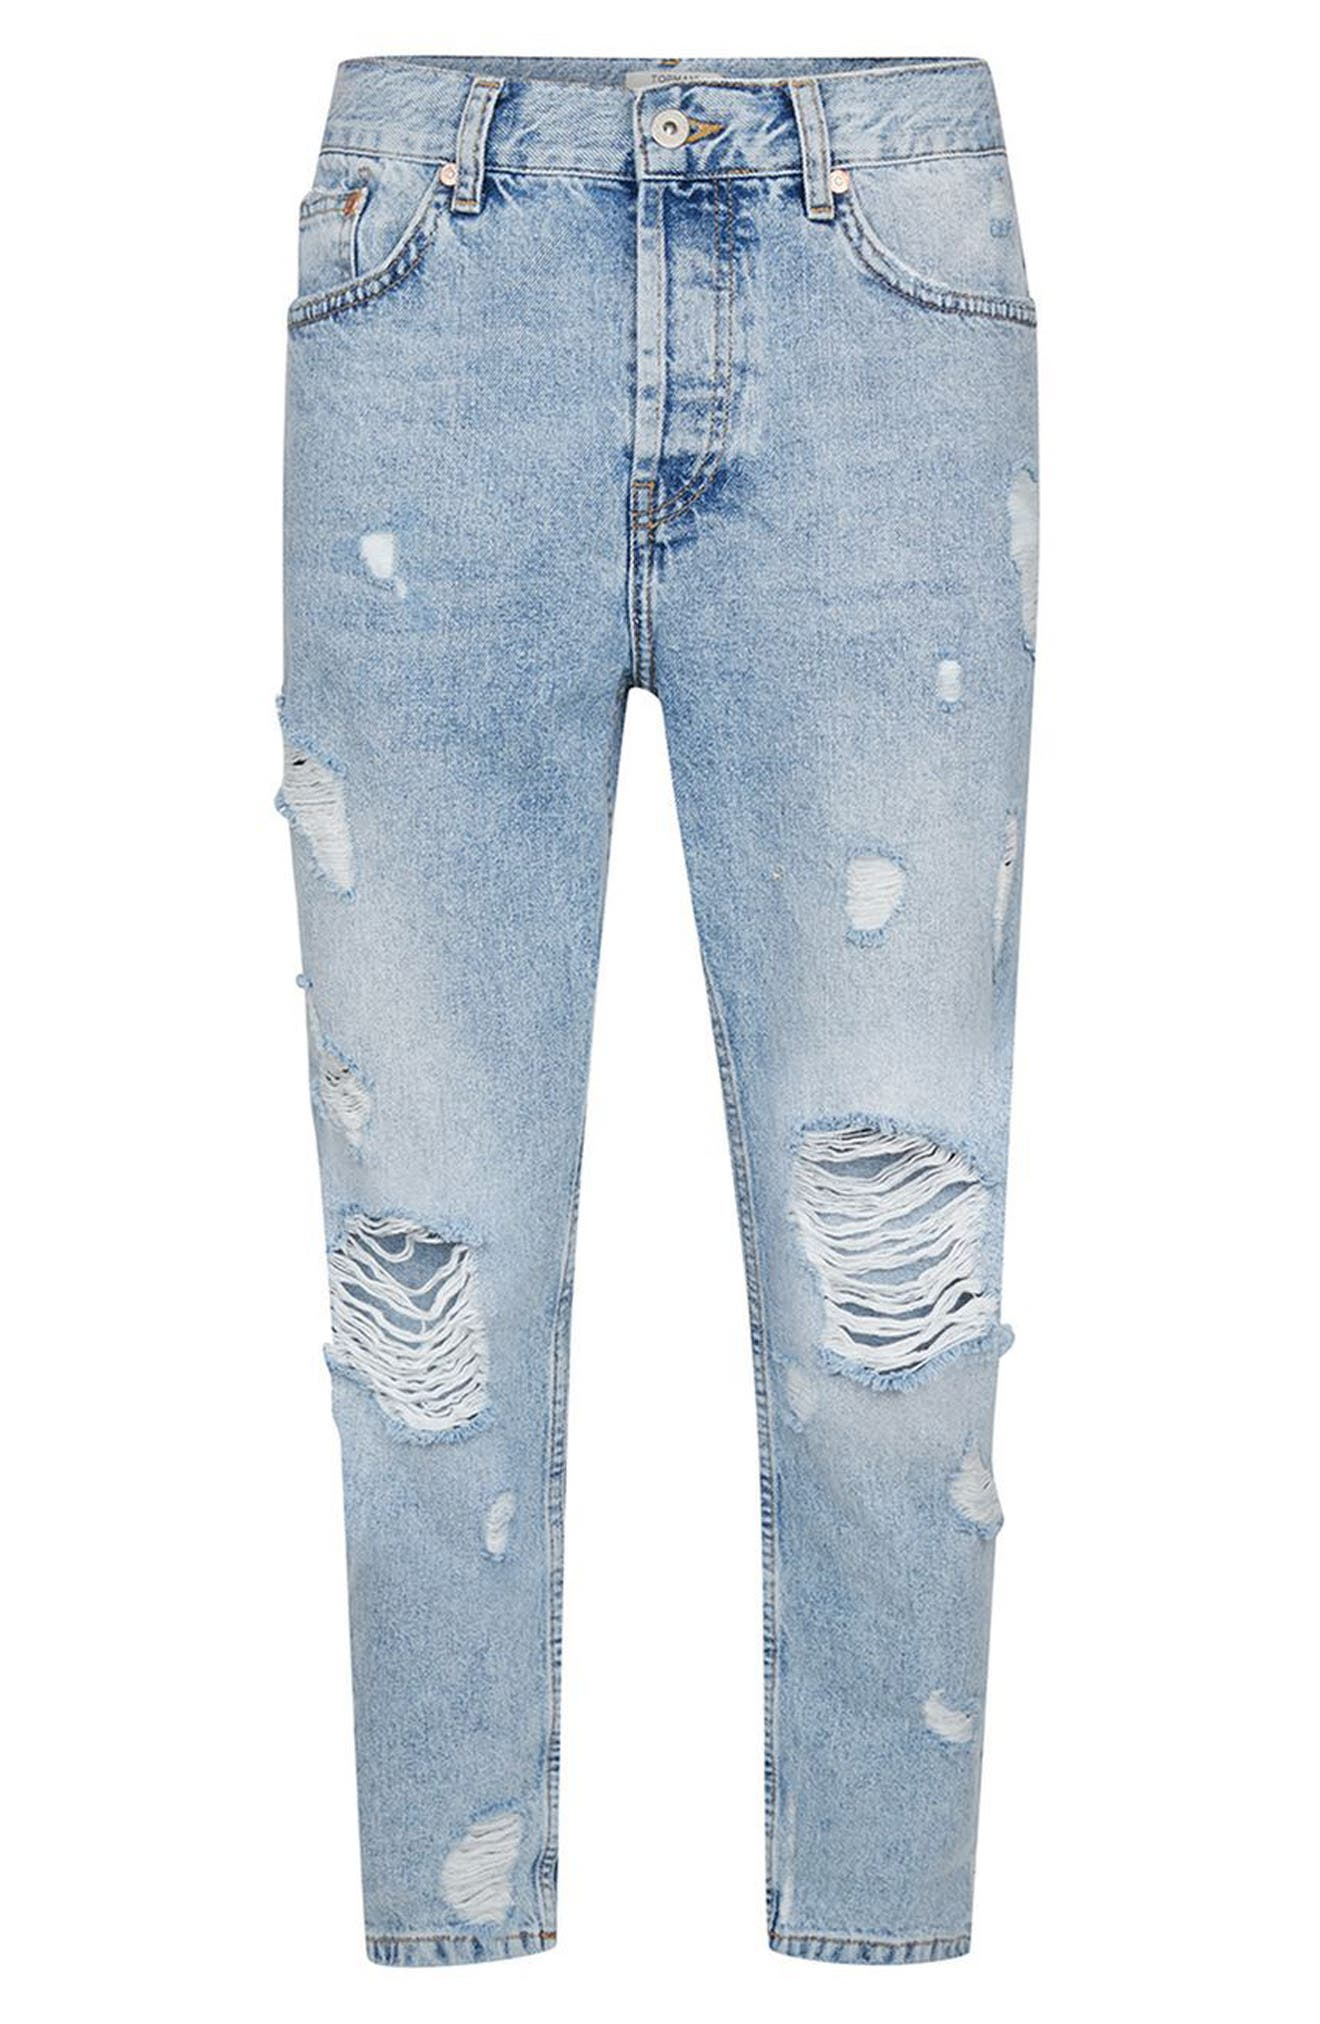 Topshop Extreme Rip Tapered Jeans,                             Alternate thumbnail 4, color,                             Light Blue